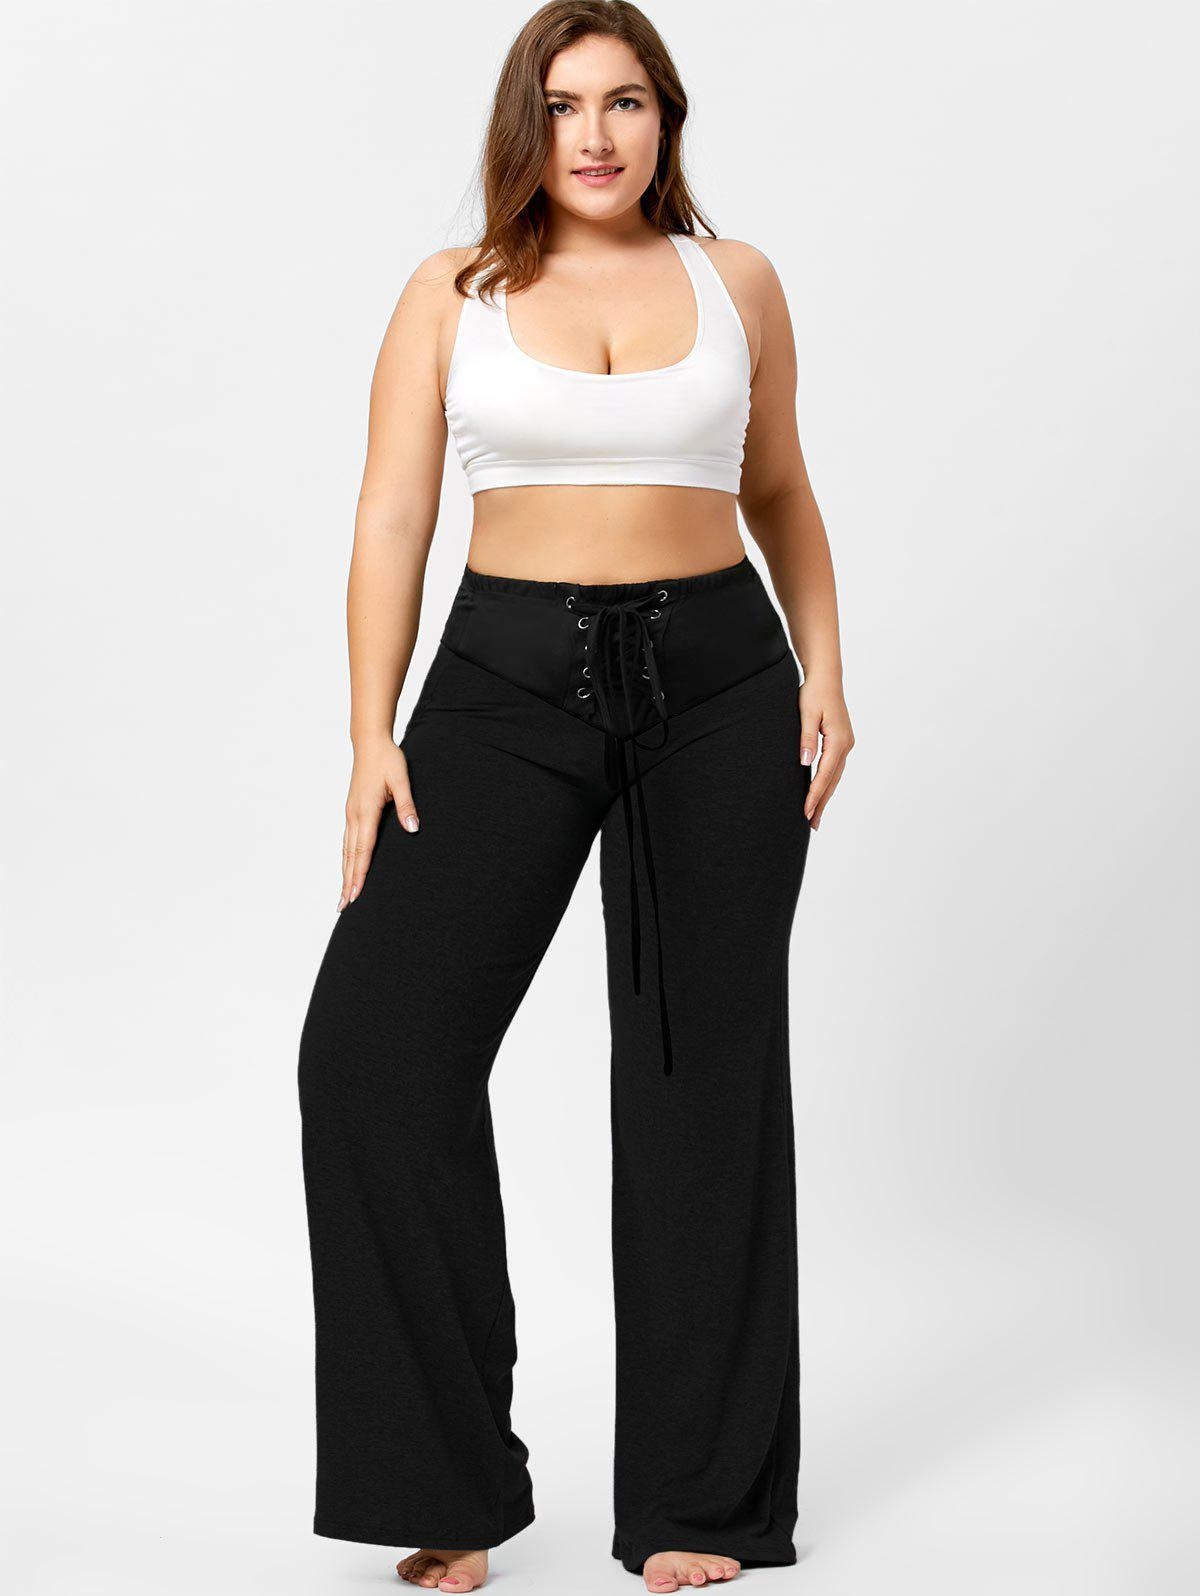 Two Tone Plus Size Lace-up Flare Pants - BLACK 5XL